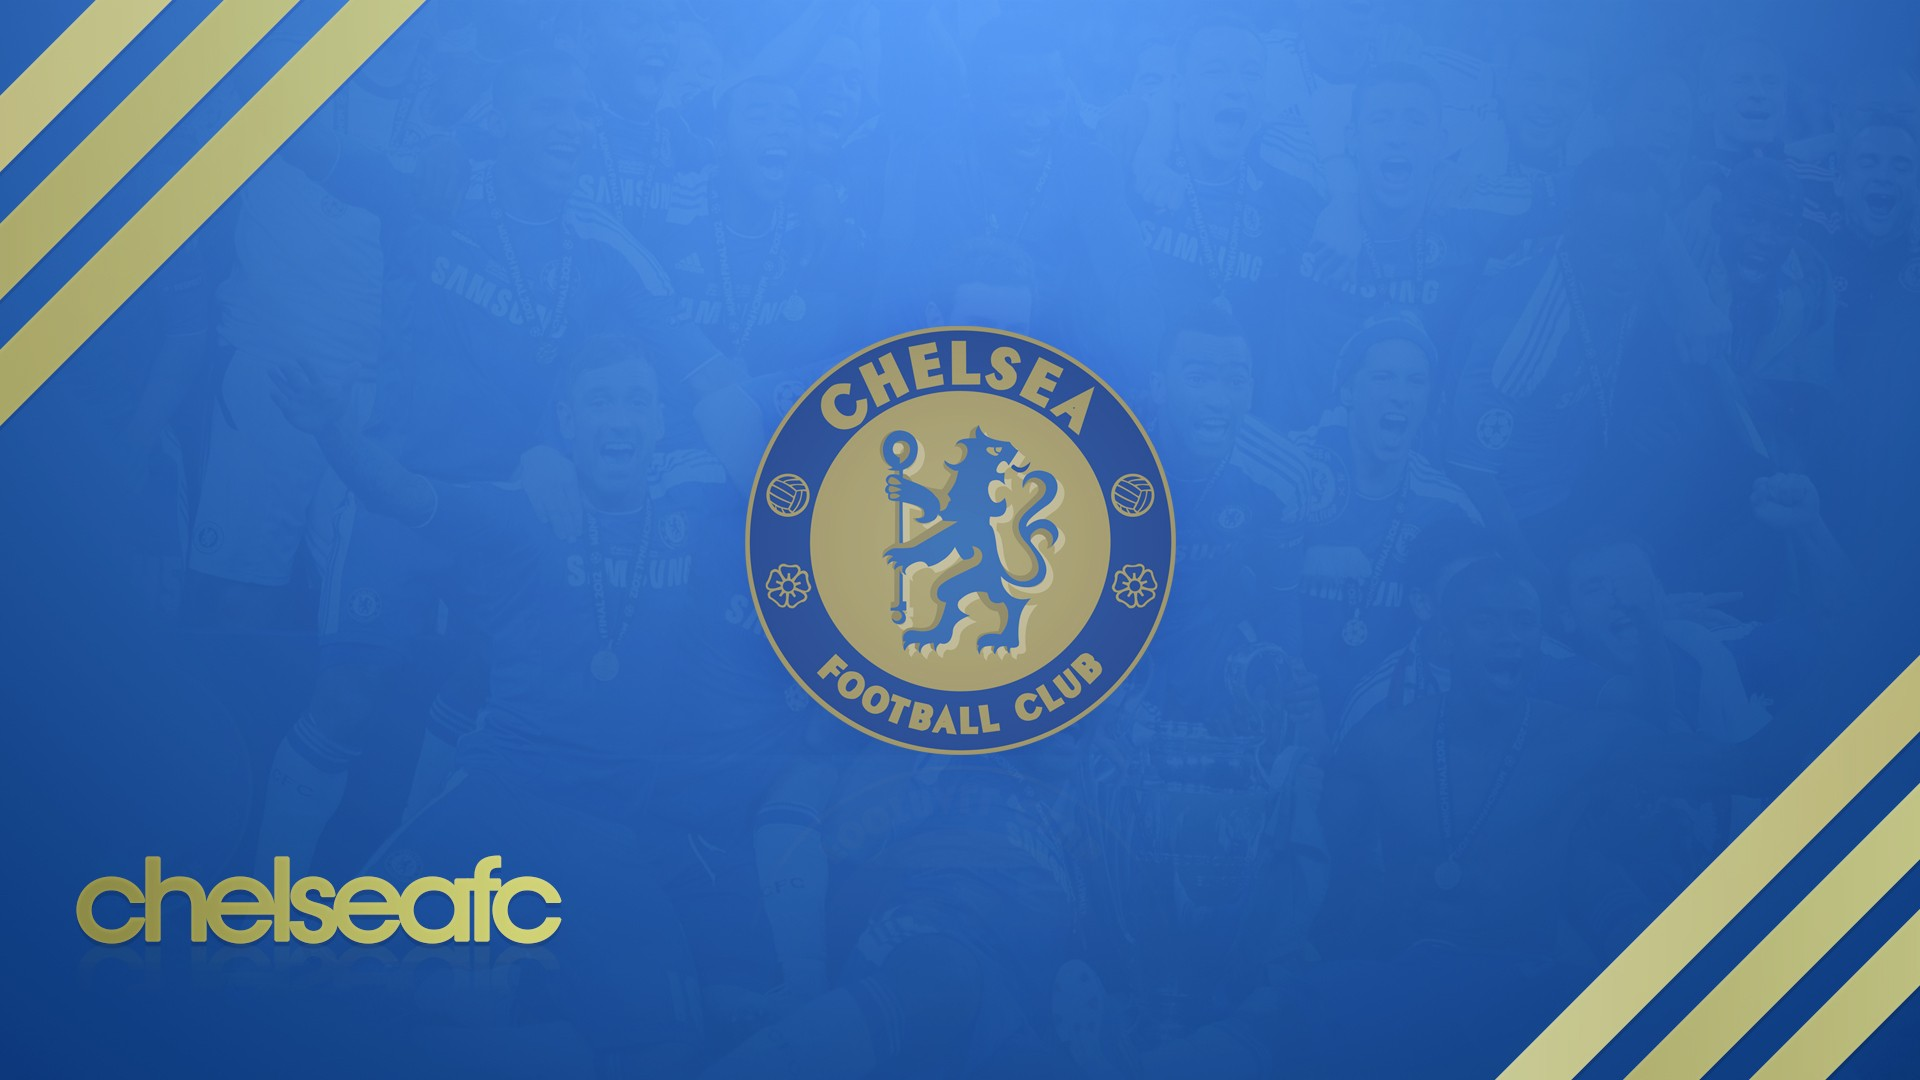 Chelsea fc pictures hd desktop wallpapers 4k hd chelsea fc pictures voltagebd Image collections